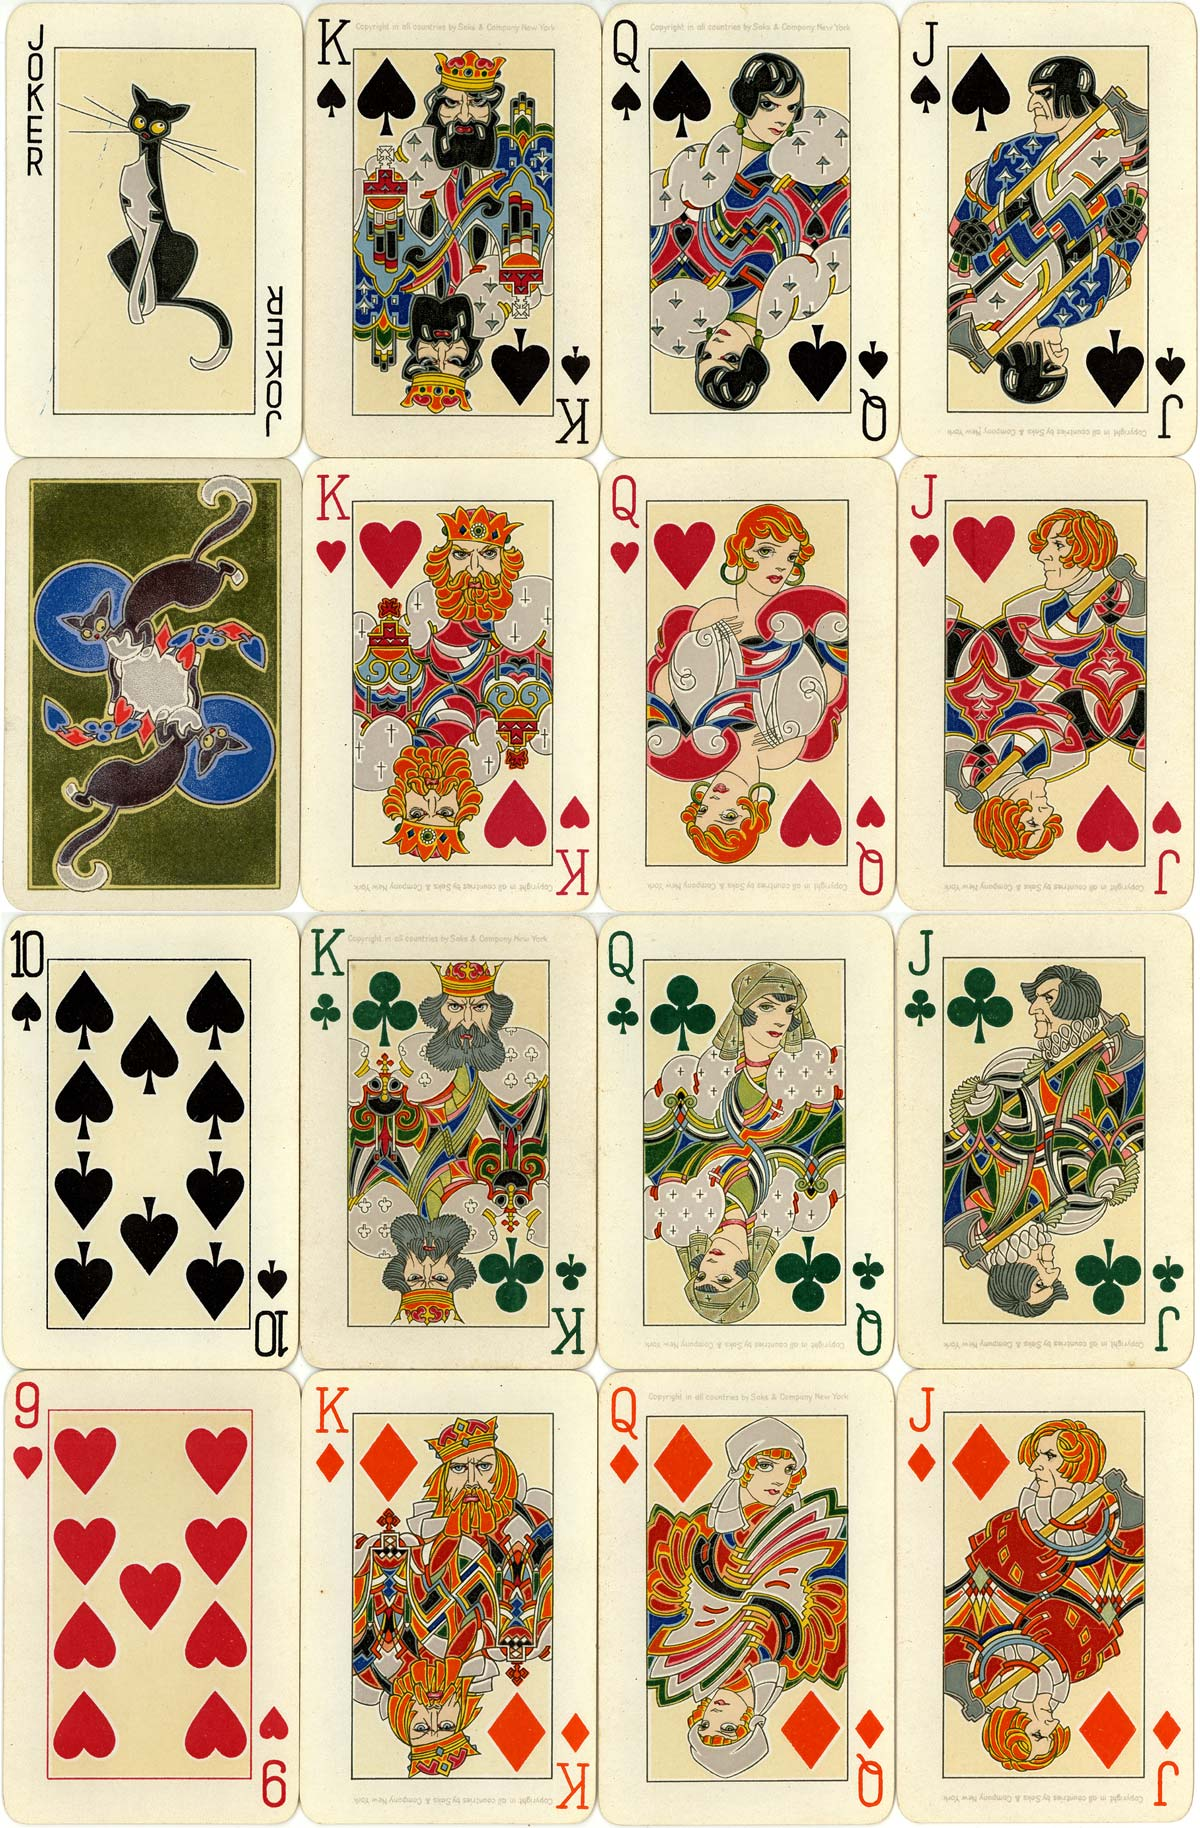 promotional playing cards printed by Dondorf for Saks & Company, New York, late 1920s